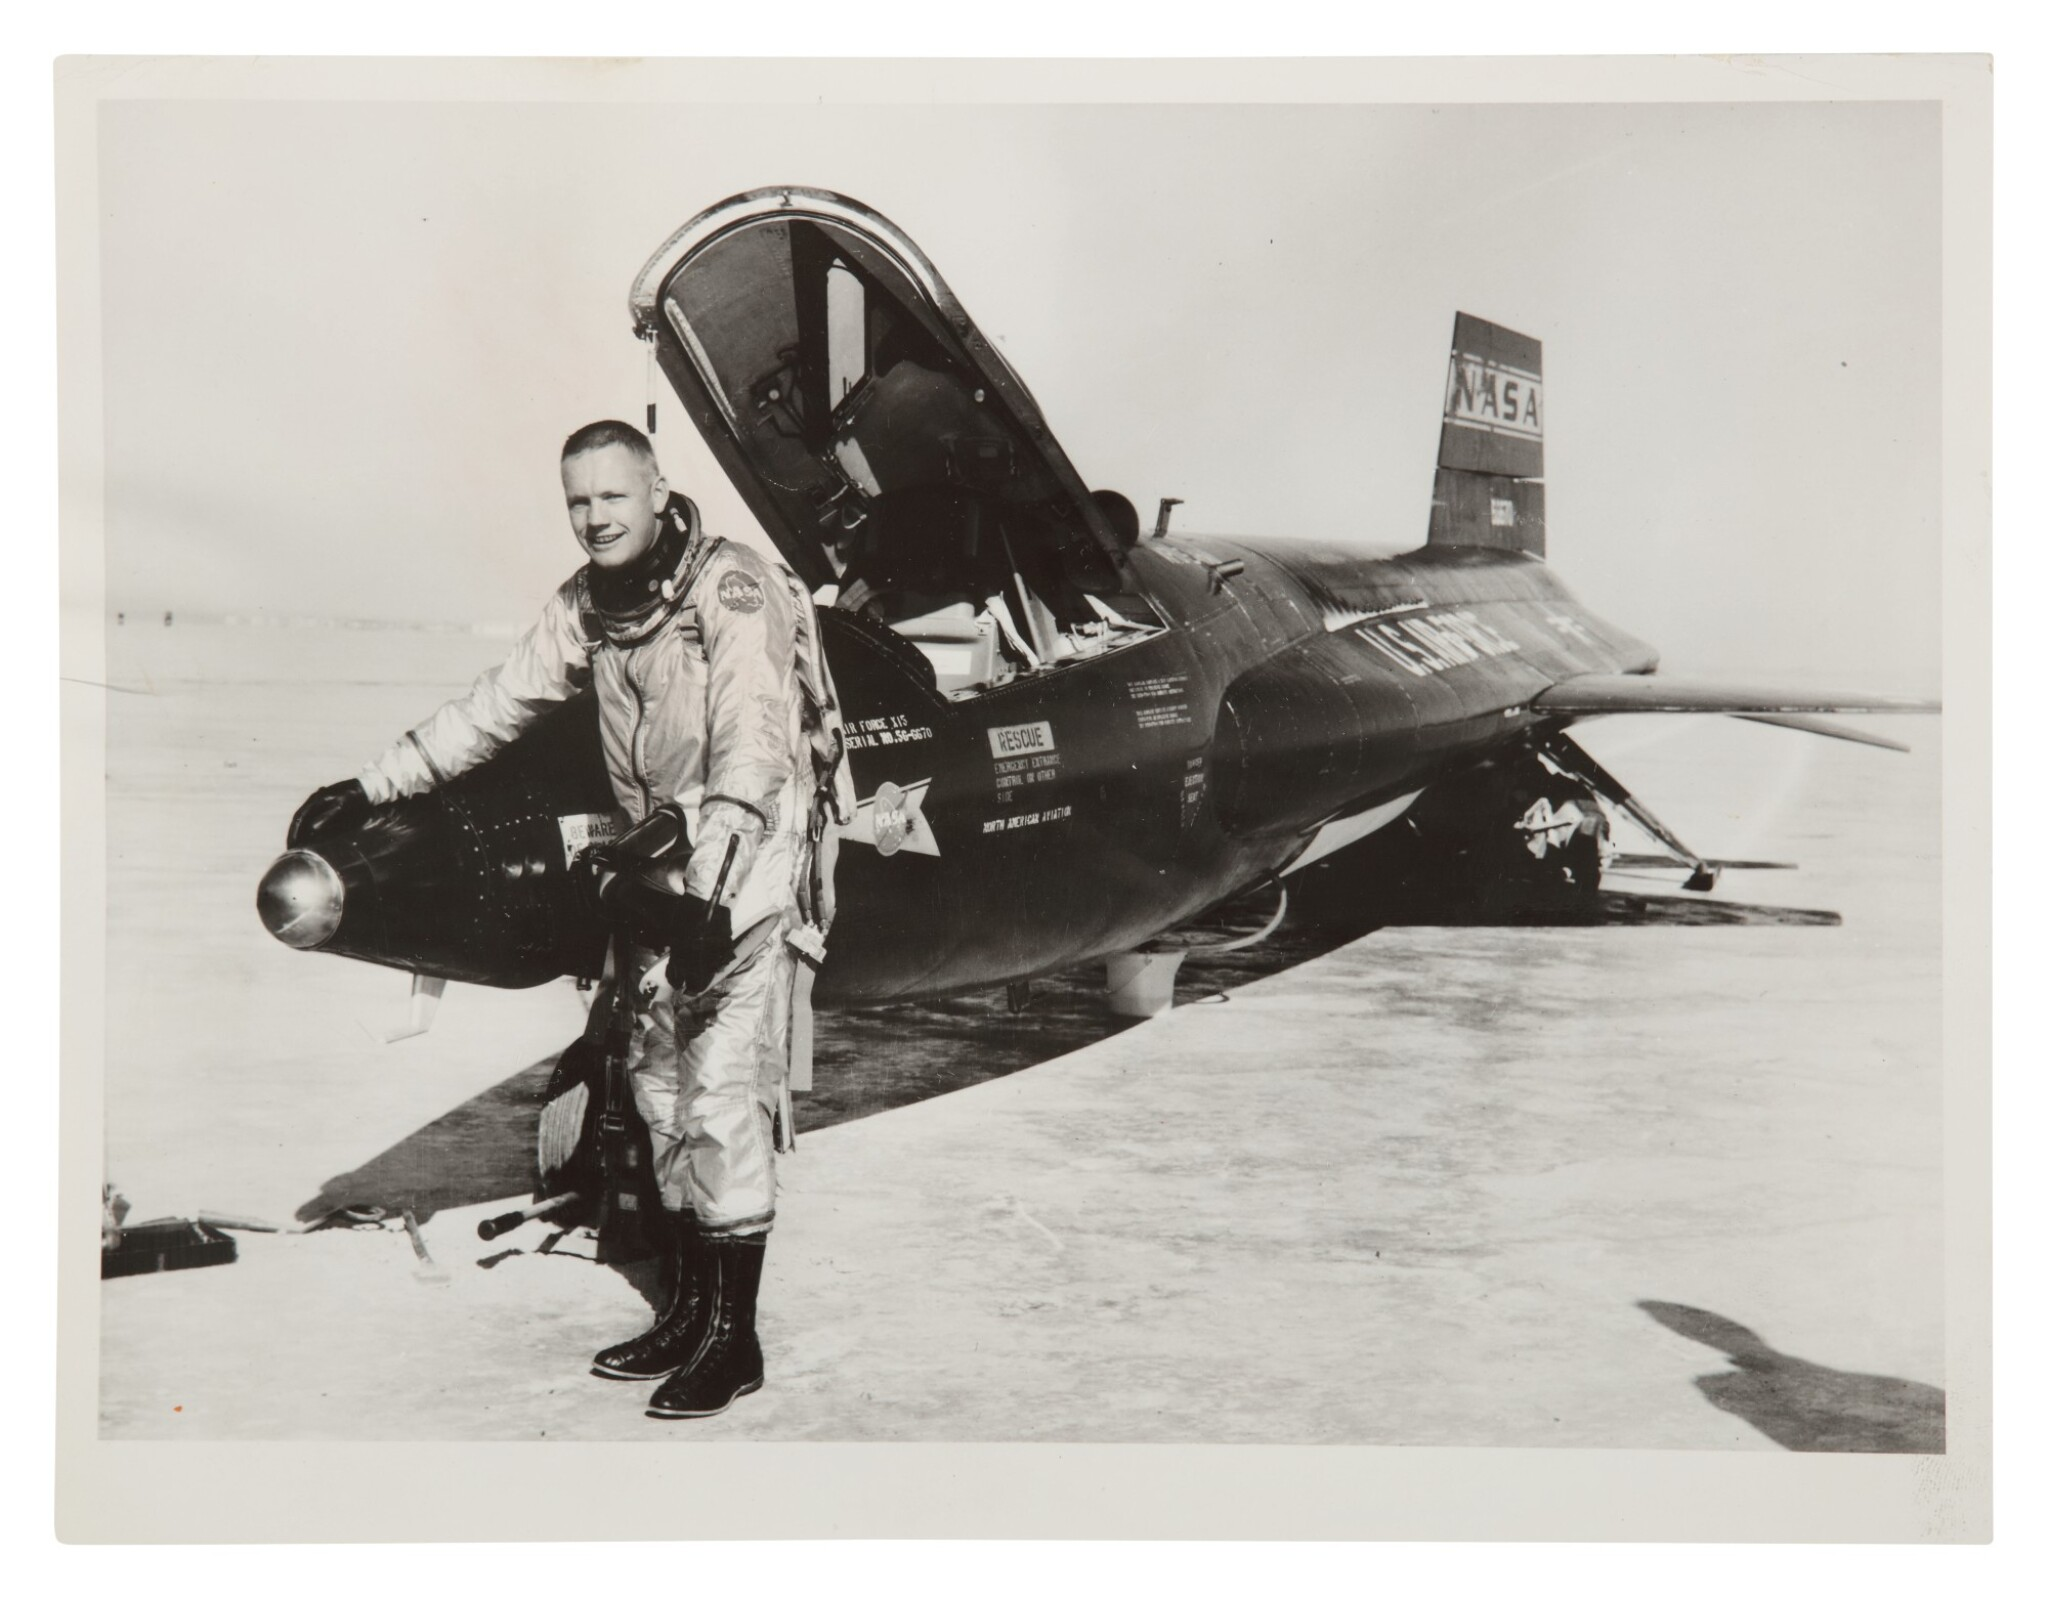 [X-15] NEIL ARMSTRONG WITH THE FIRST X-15 ROCKET PLANE. VINTAGE SILVER GELATIN PRINT, 1960.